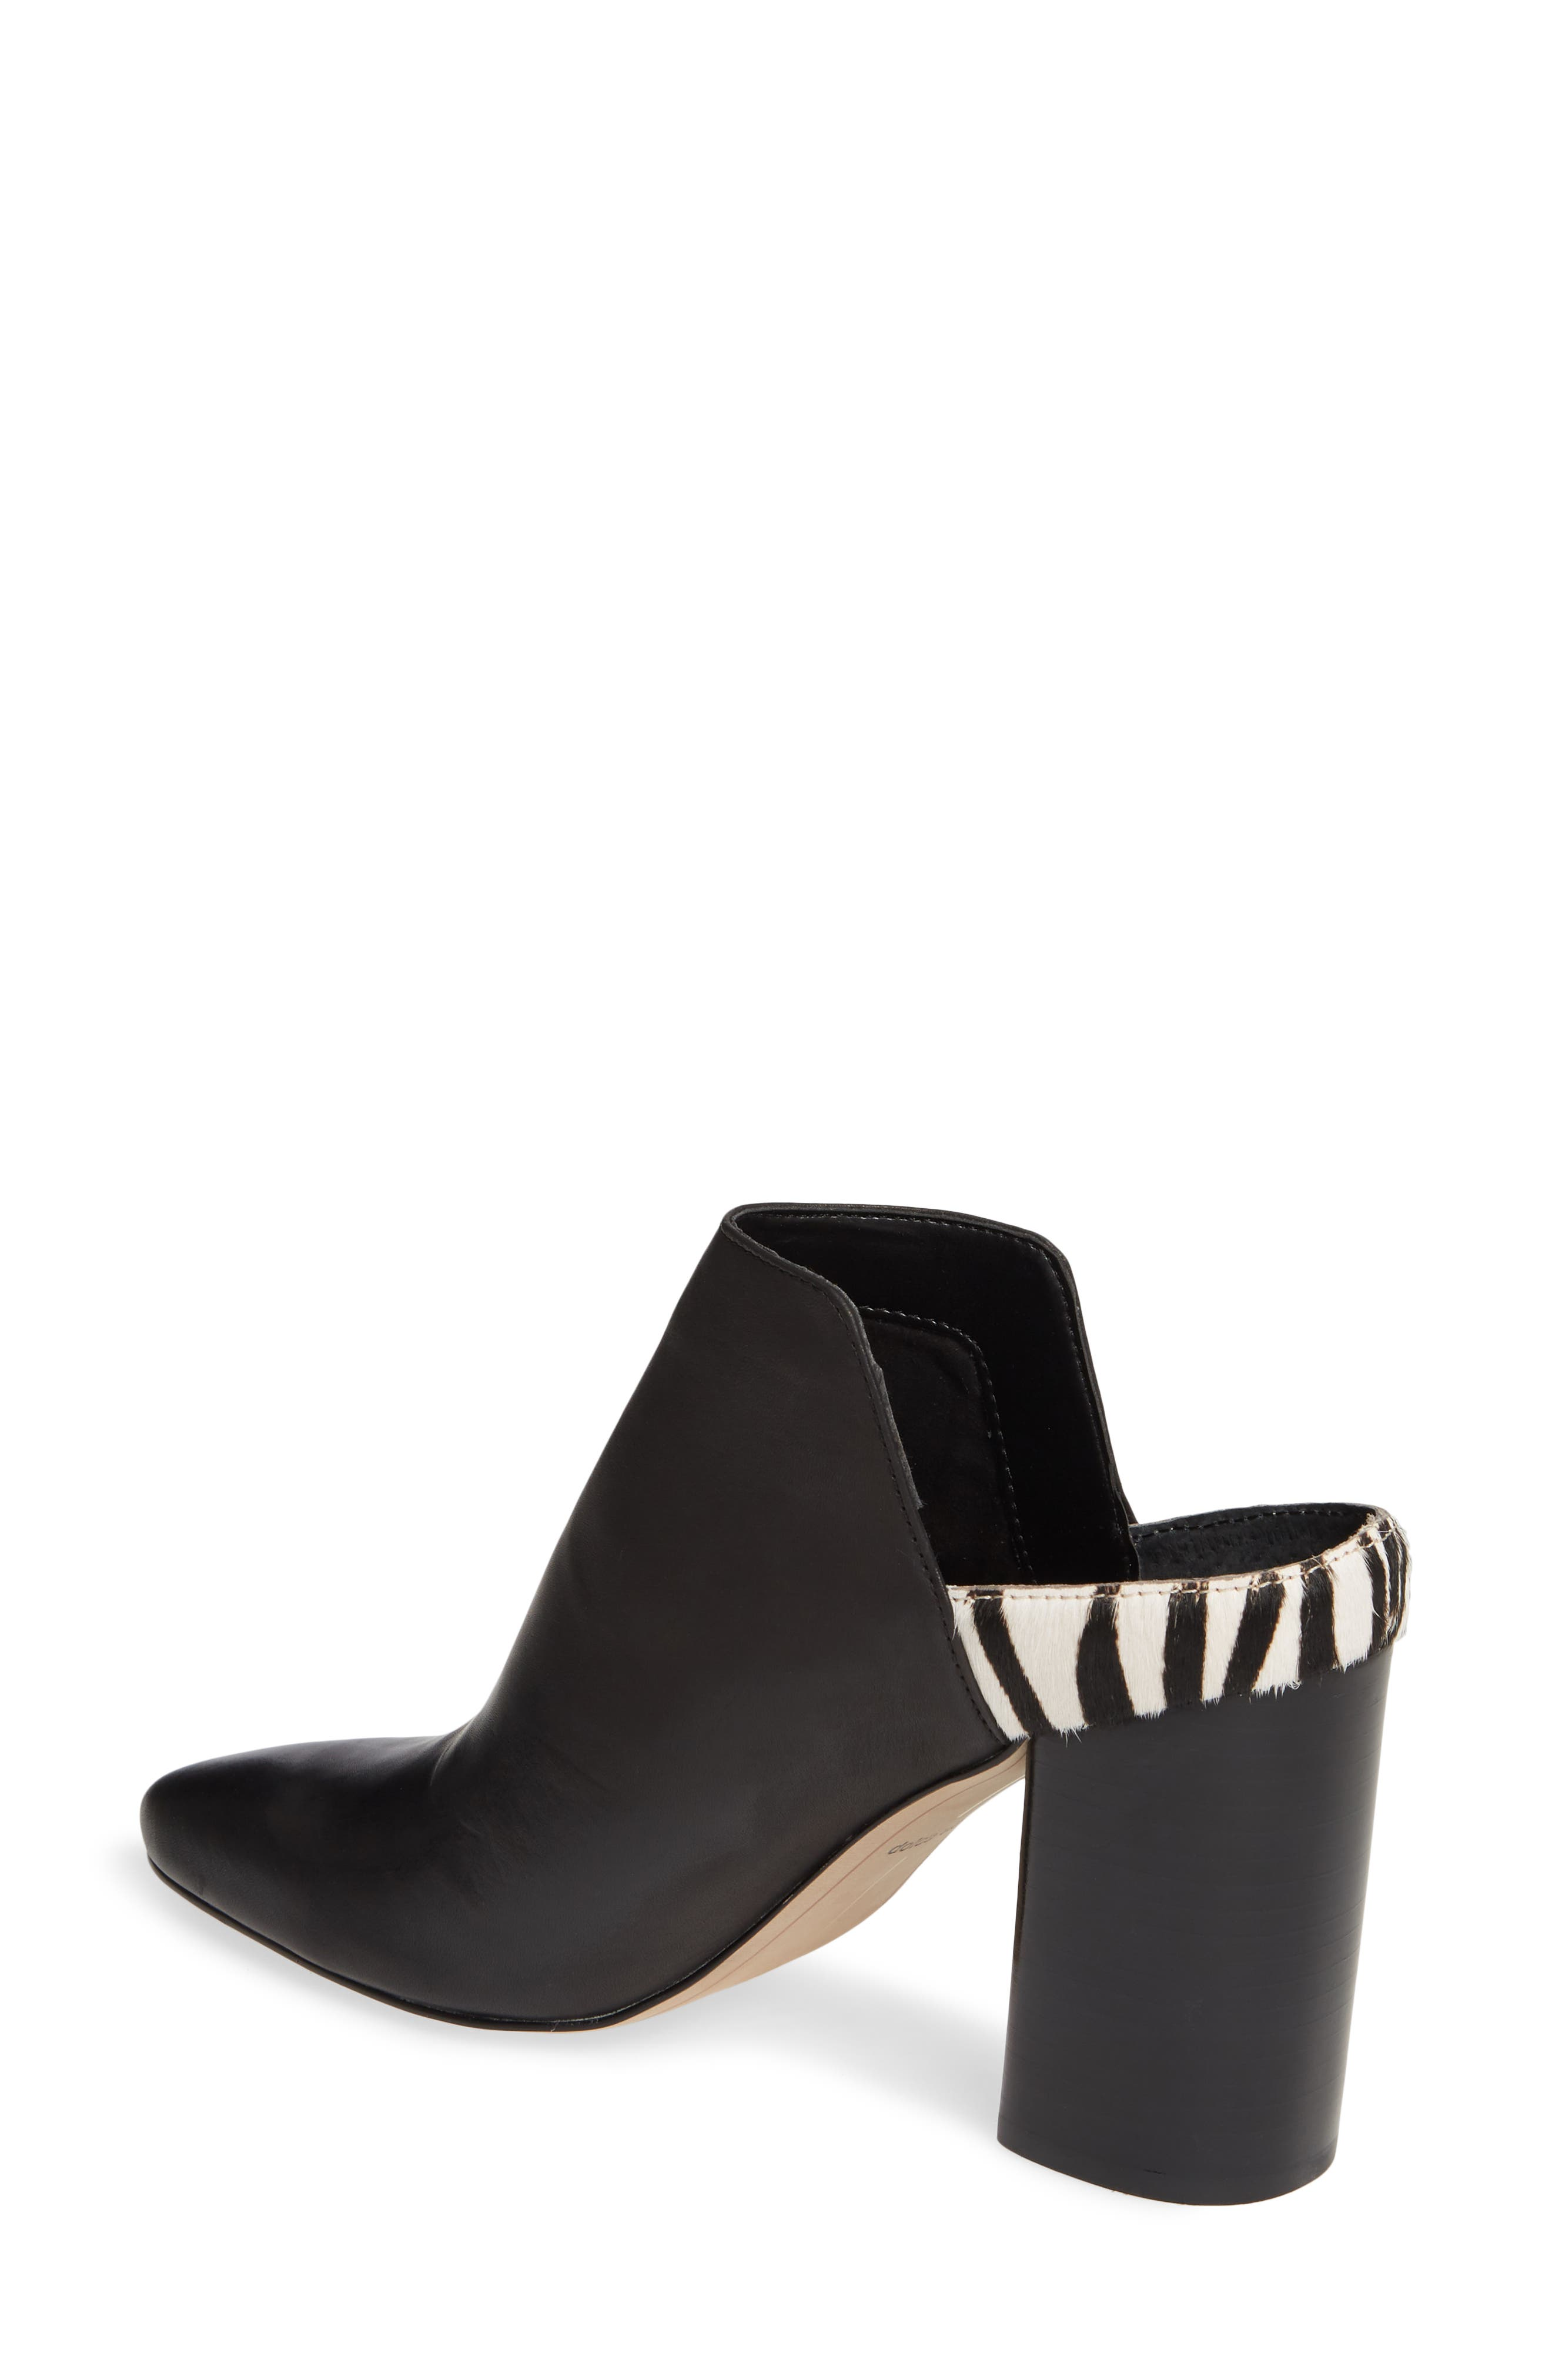 DOLCE VITA, Renly Mule, Alternate thumbnail 2, color, ZEBRA PRINT CALF HAIR/ LEATHER